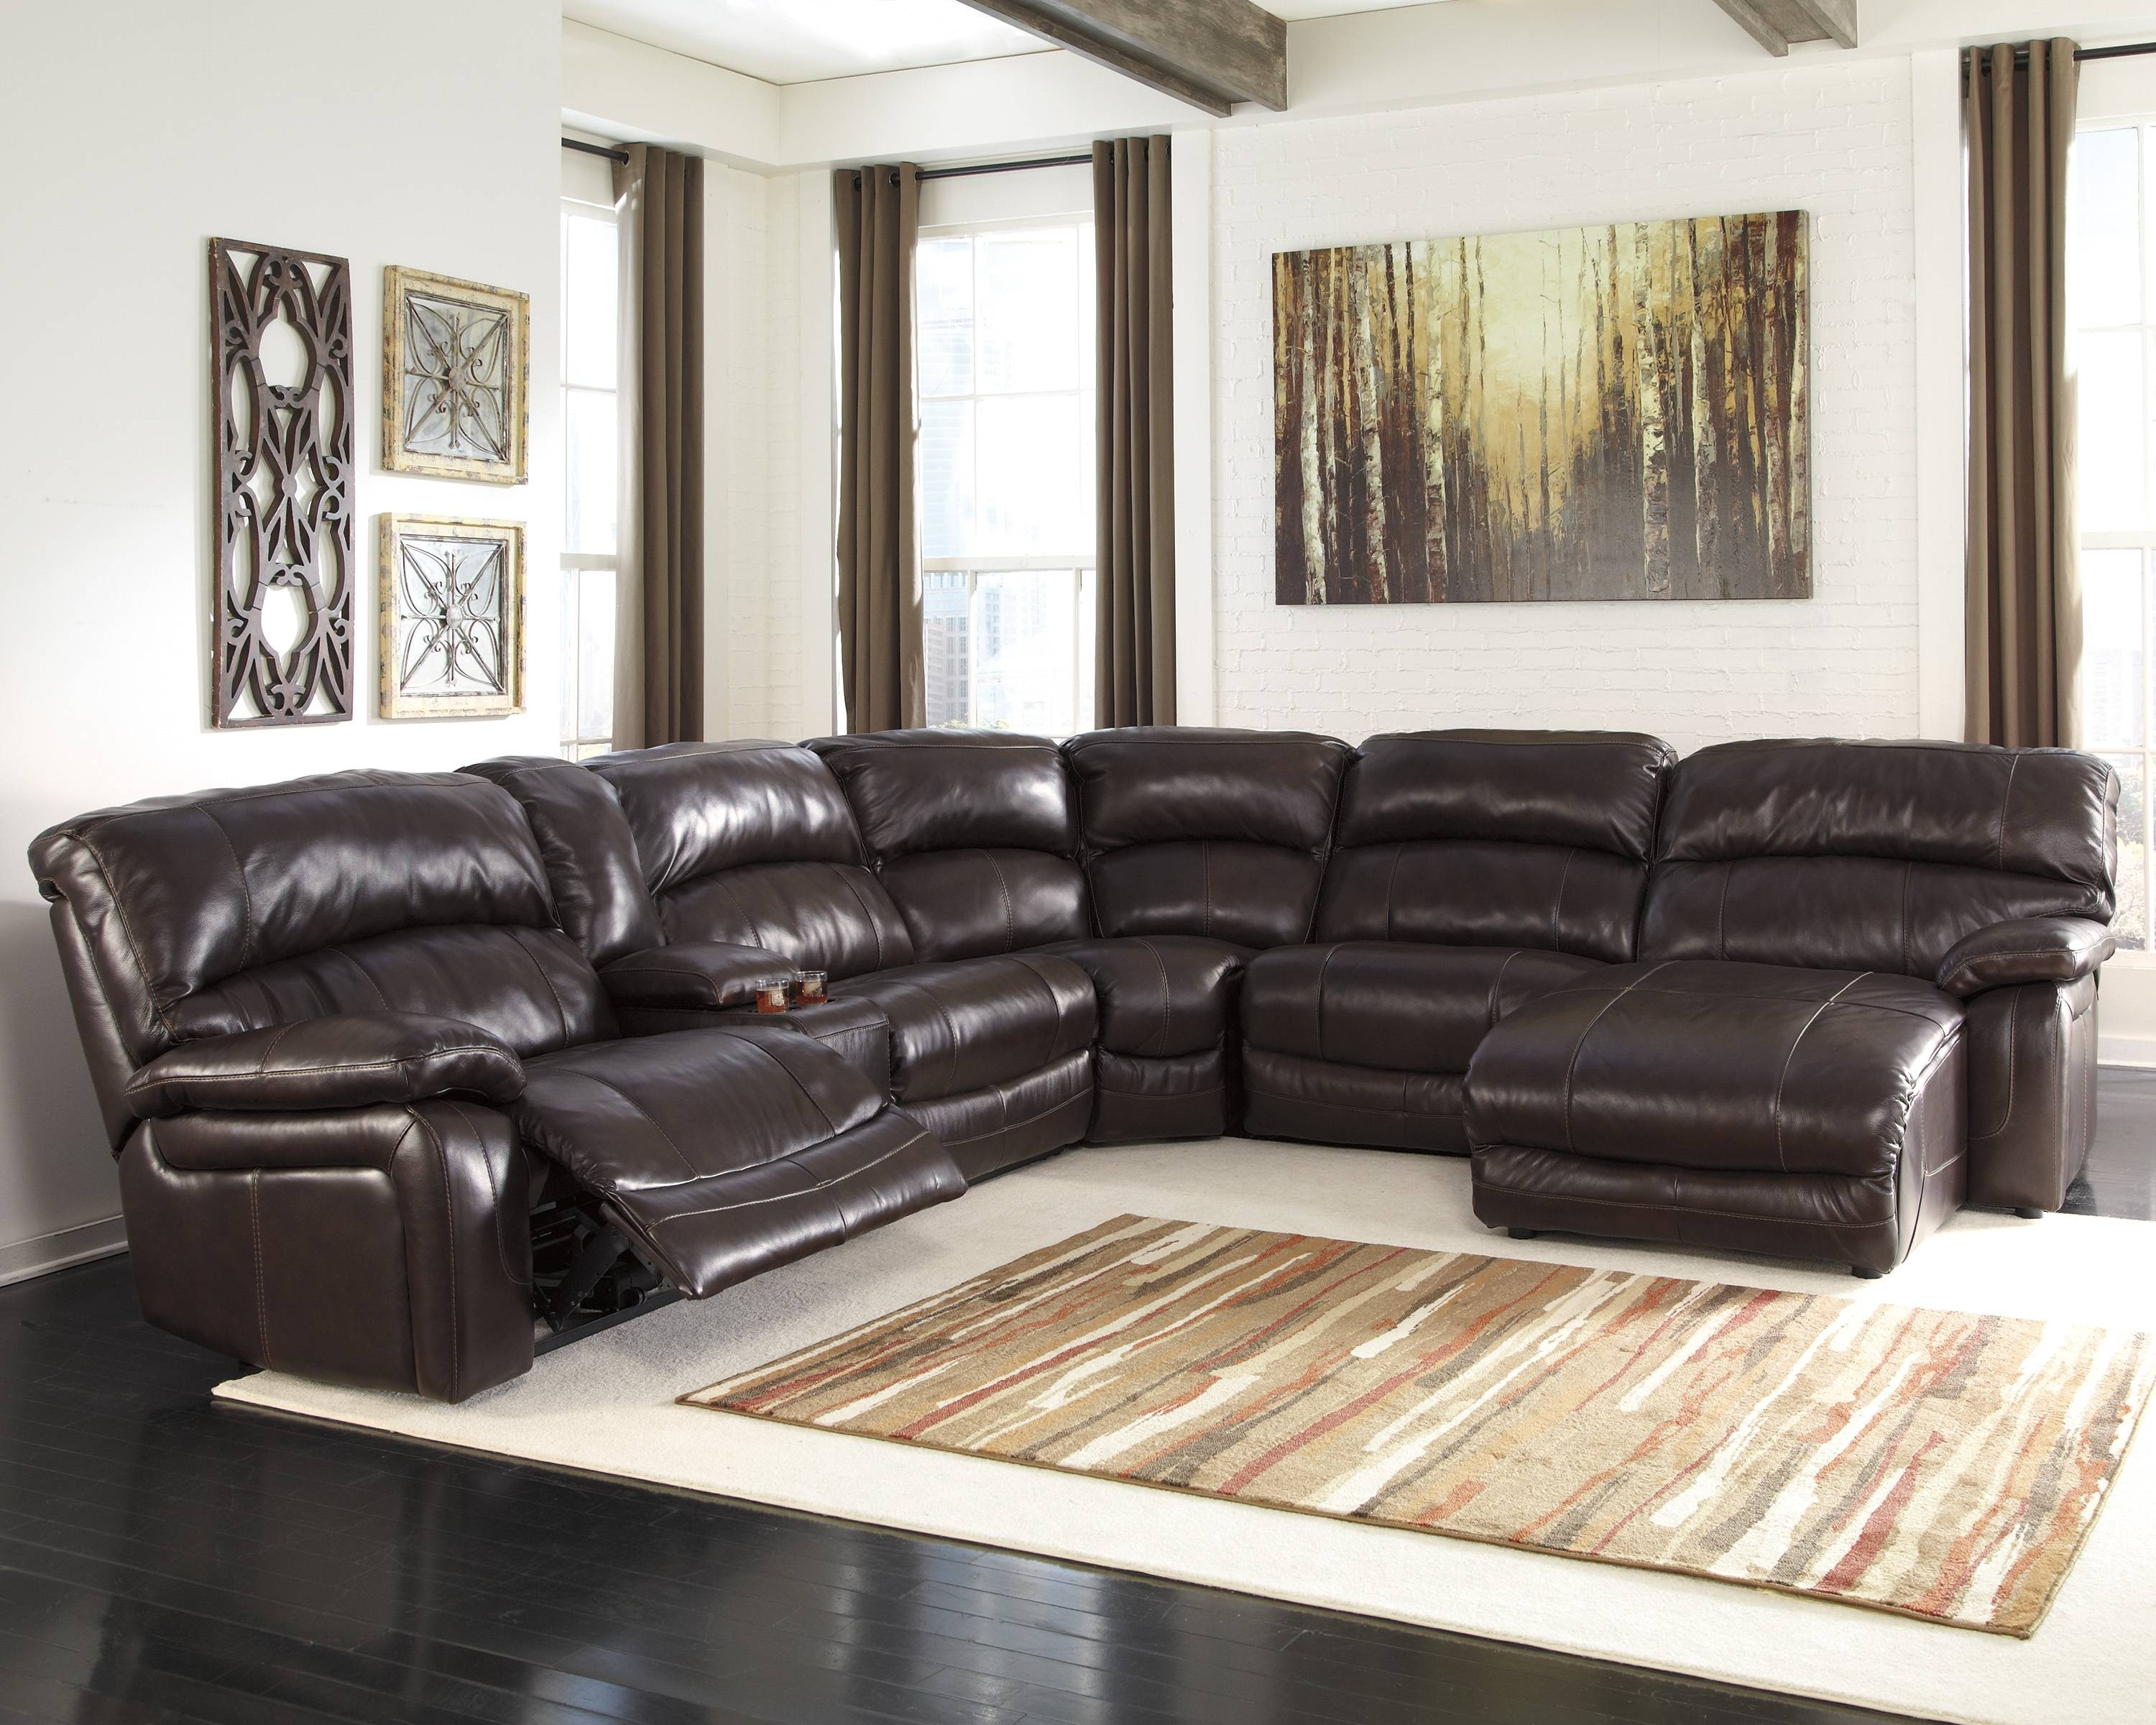 Furniture: Sectional Sofa With Recliner | Sears Sectional Couch inside Craftsman Sectional Sofa (Image 16 of 30)